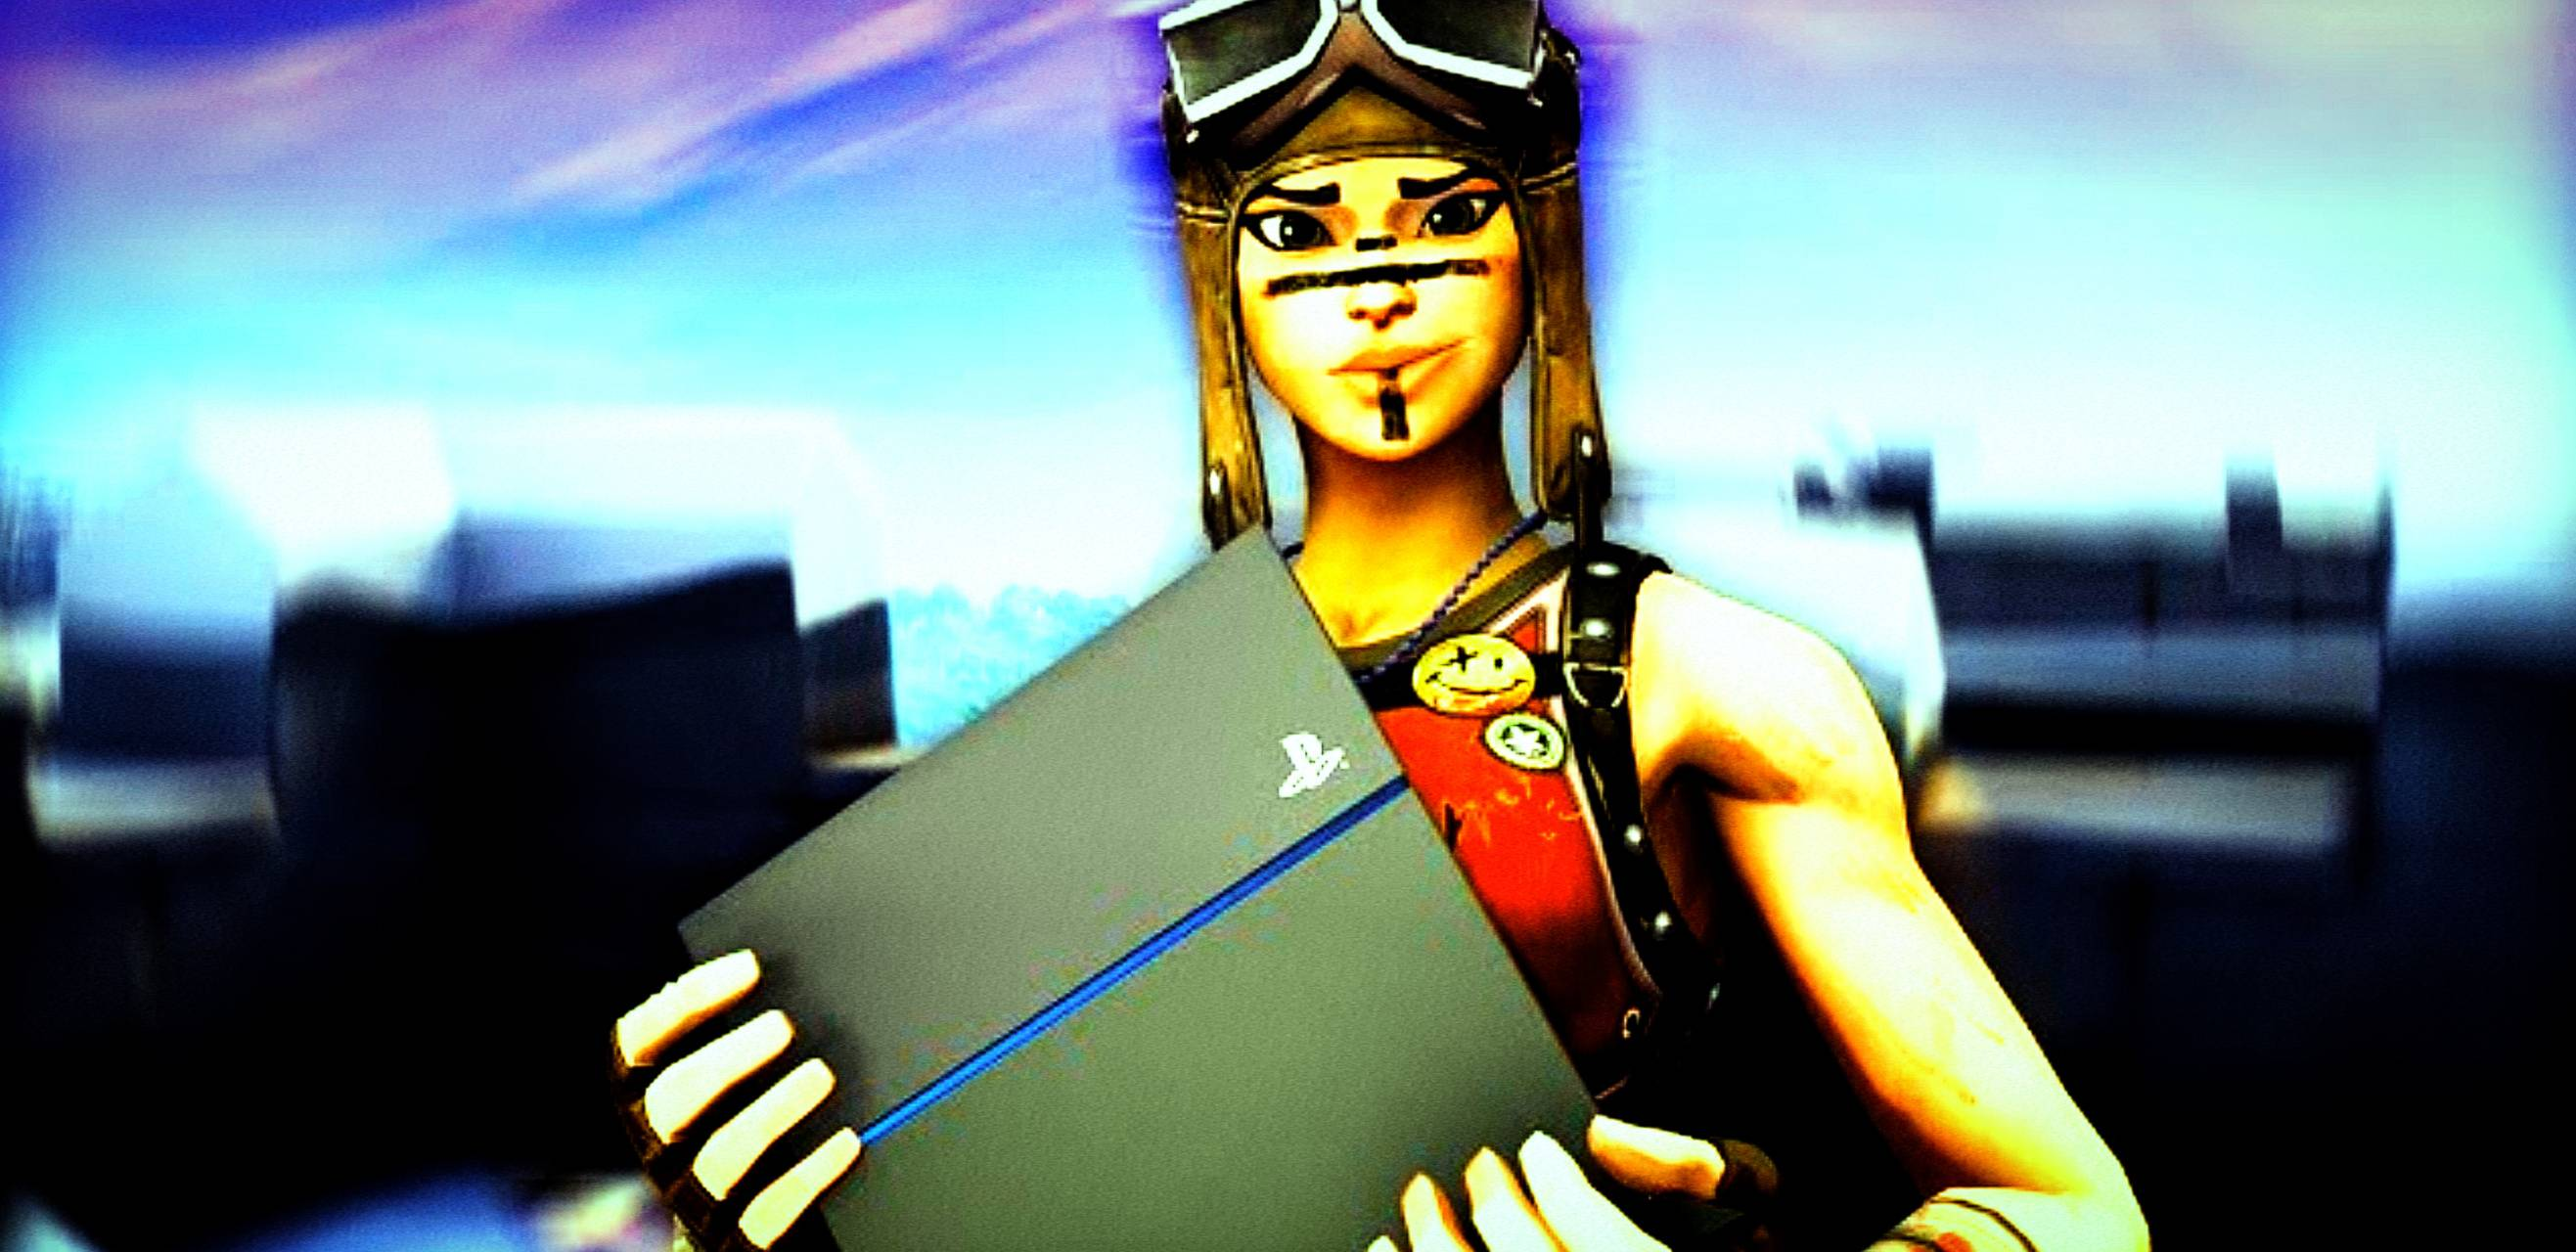 Renegade Raider Wallpaper By Sauceyyyt C9 Free On Zedge